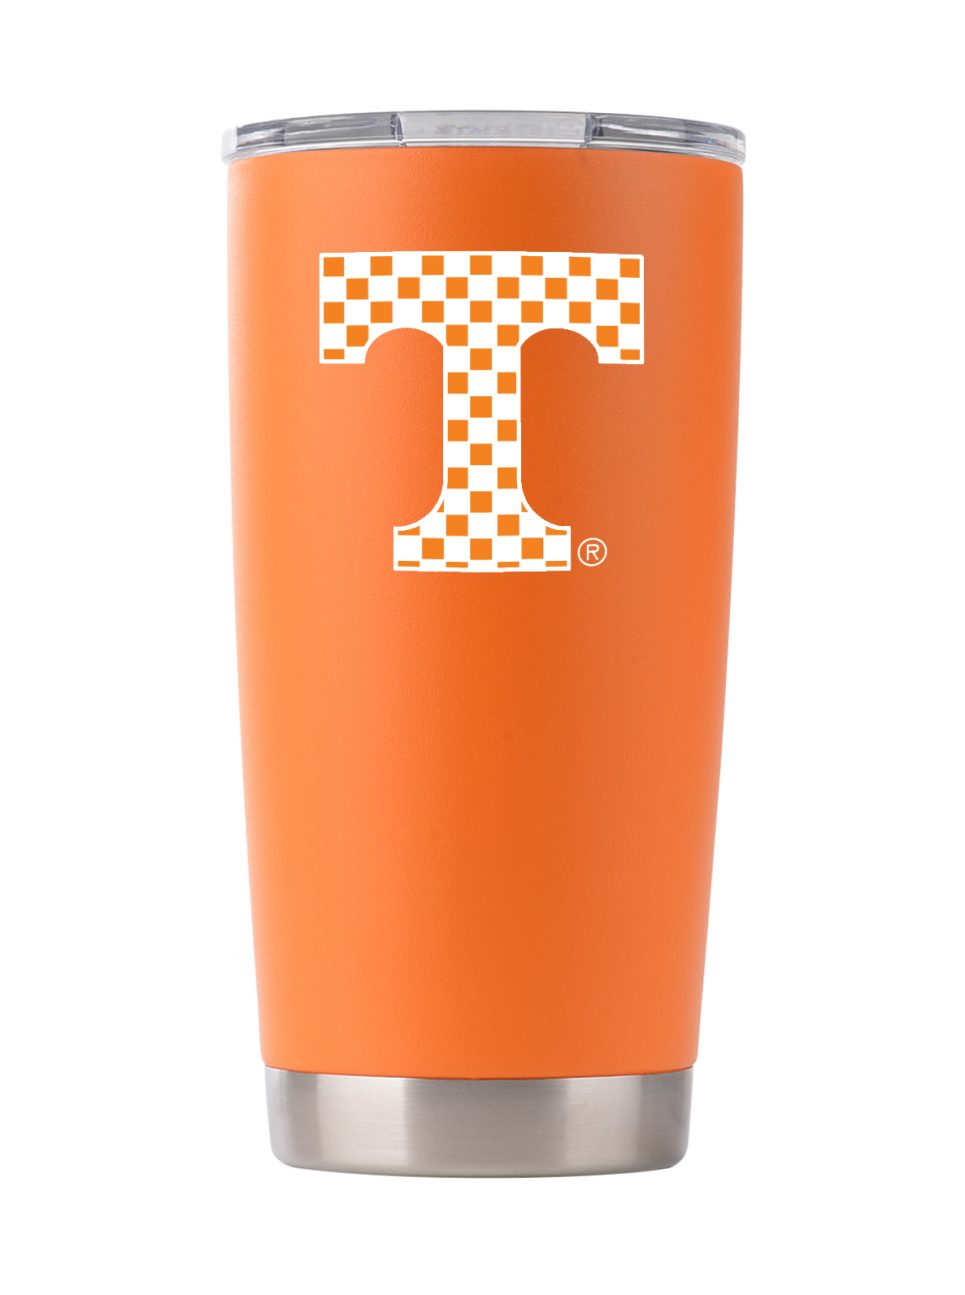 TN checker 20 oz Orange Powder Coat Stainless Steel Tumbler